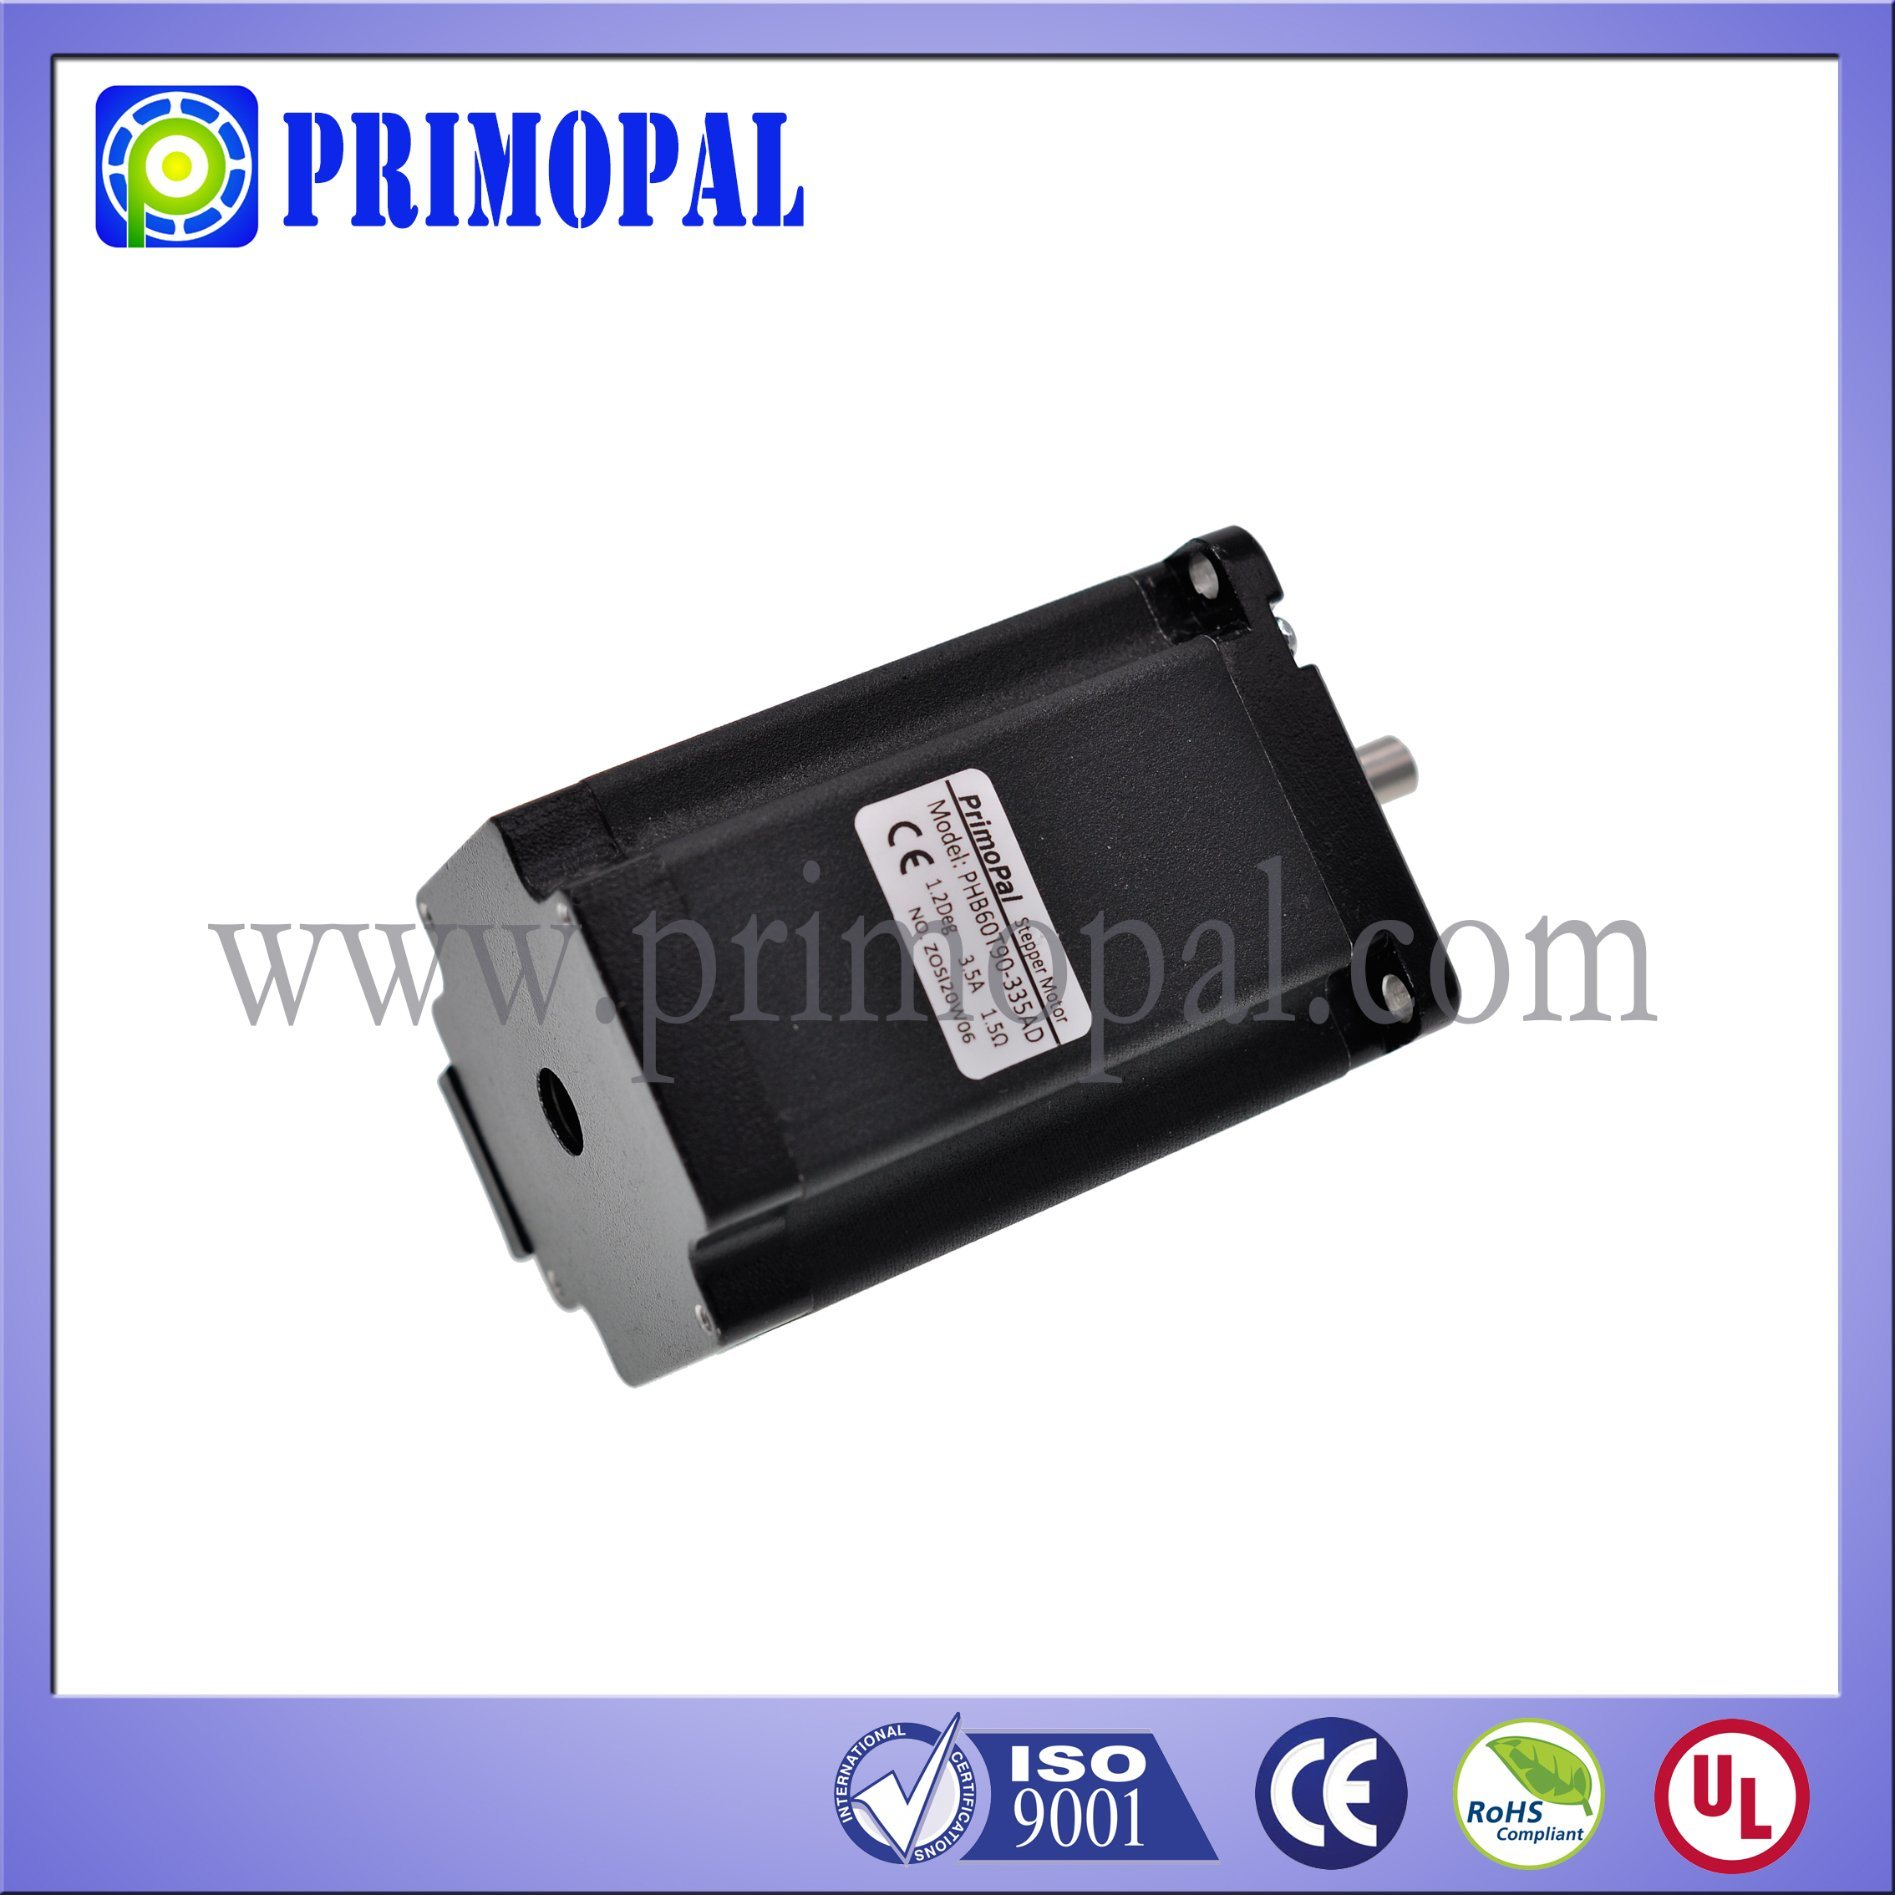 Most Popular NEMA 24 Stepper Motor for Embroidery Machine